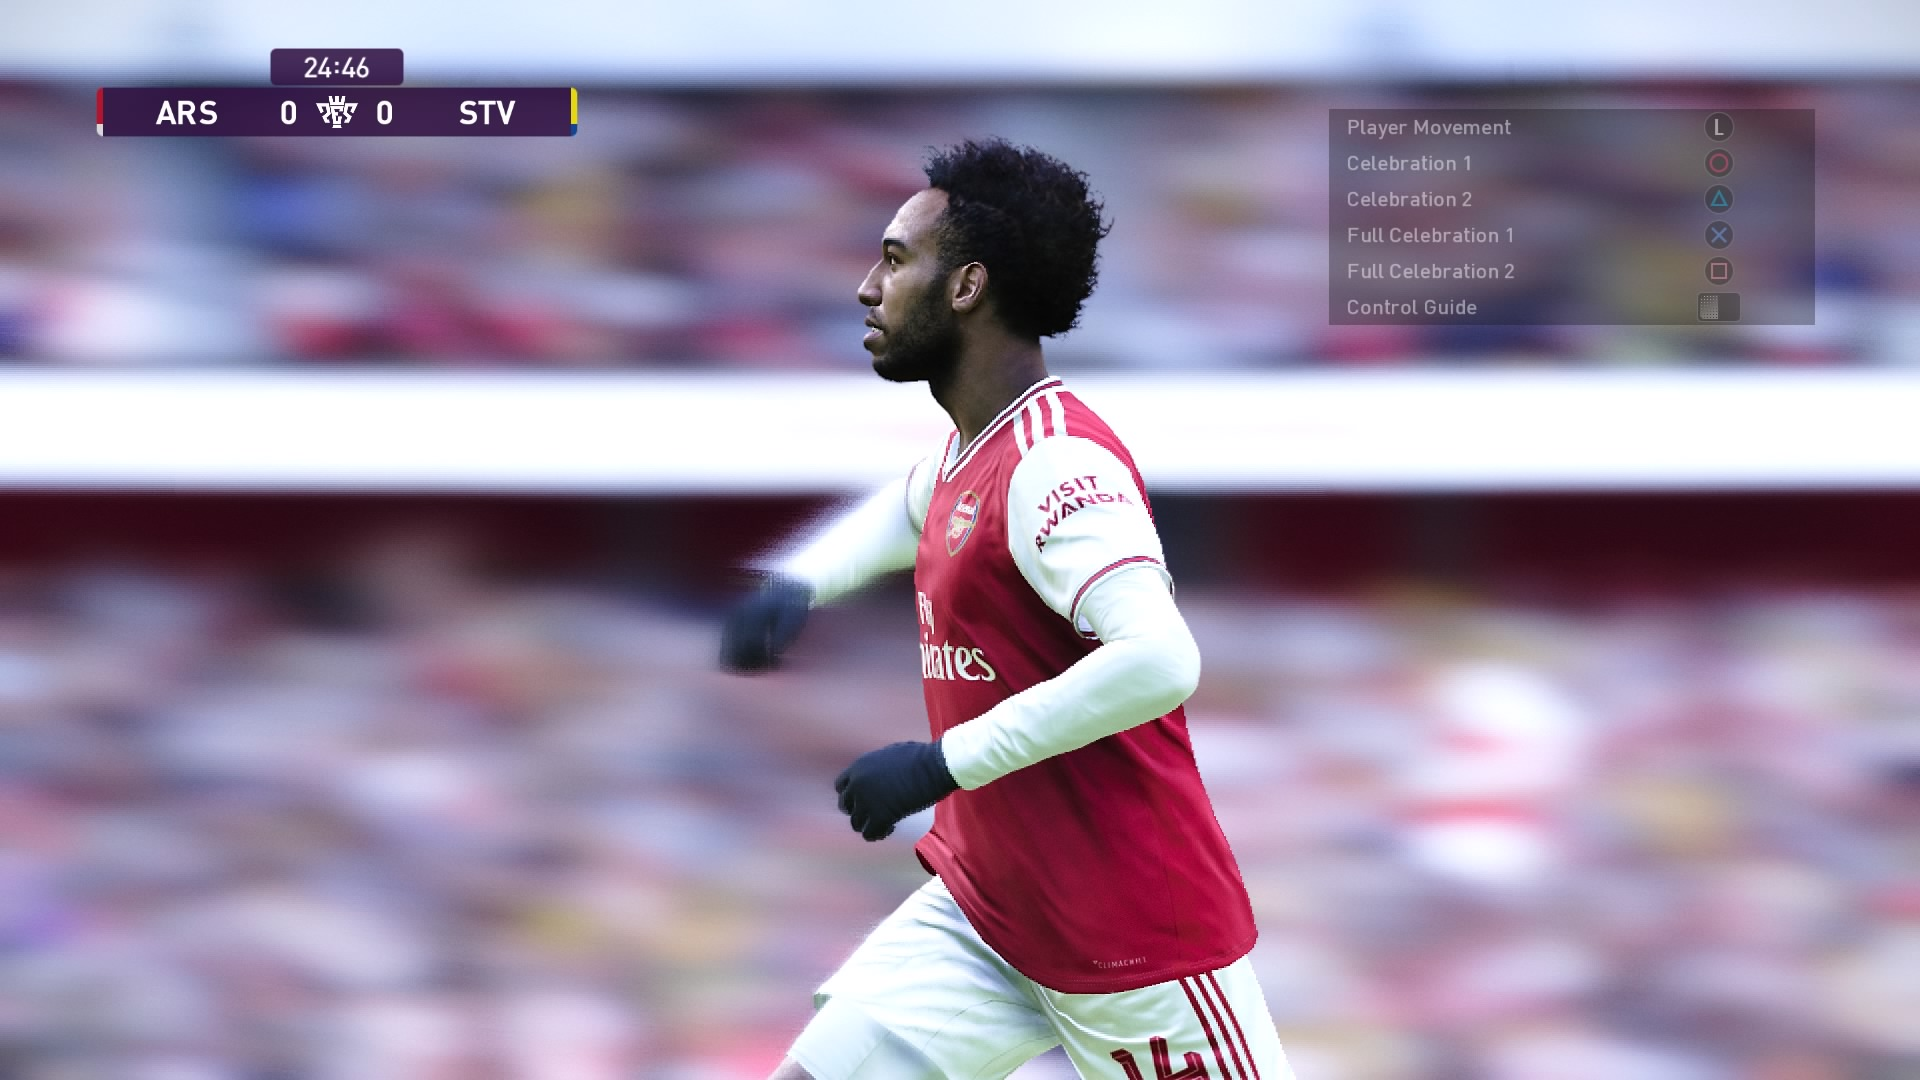 Pes 2020 Review.Efootball Pro Evolution Soccer 2020 Review A Modern Throwback